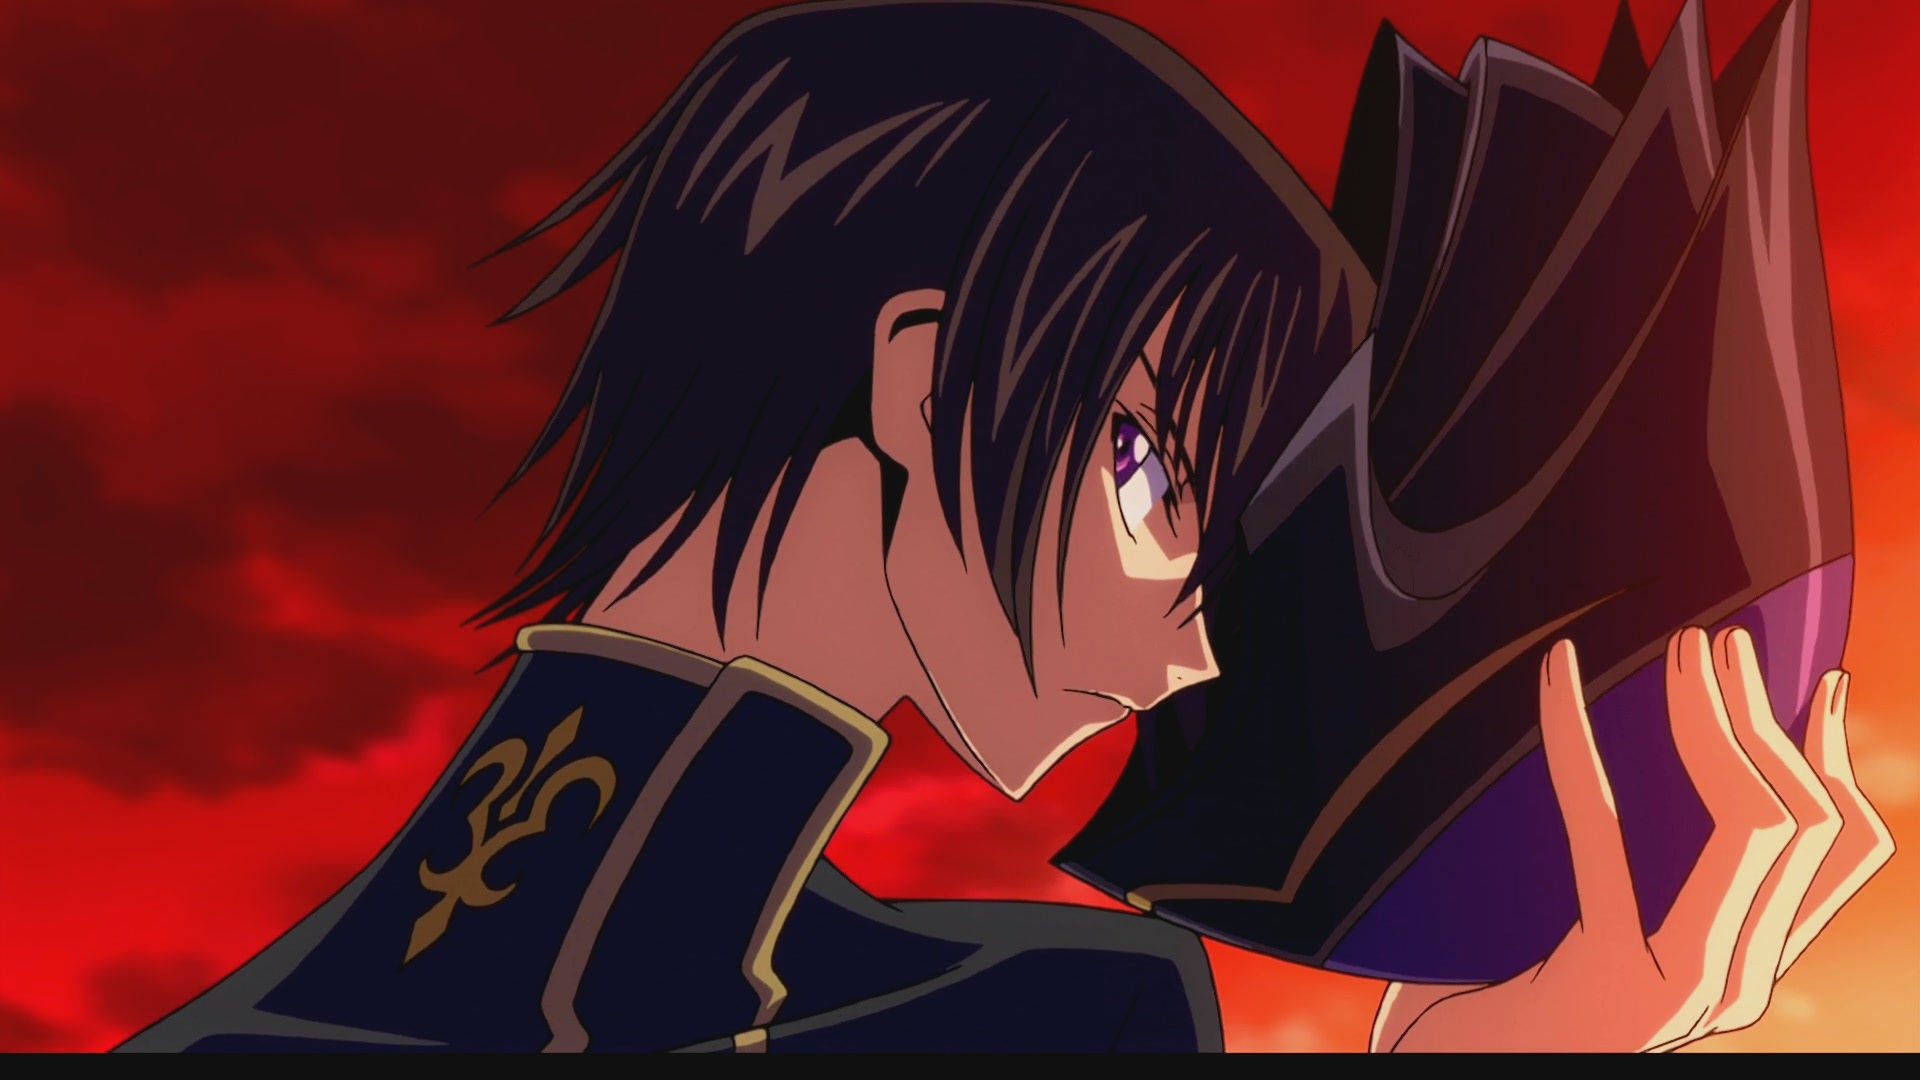 Lelouch Lamperouge Hd Wallpaper Zerochan Anime Image Board